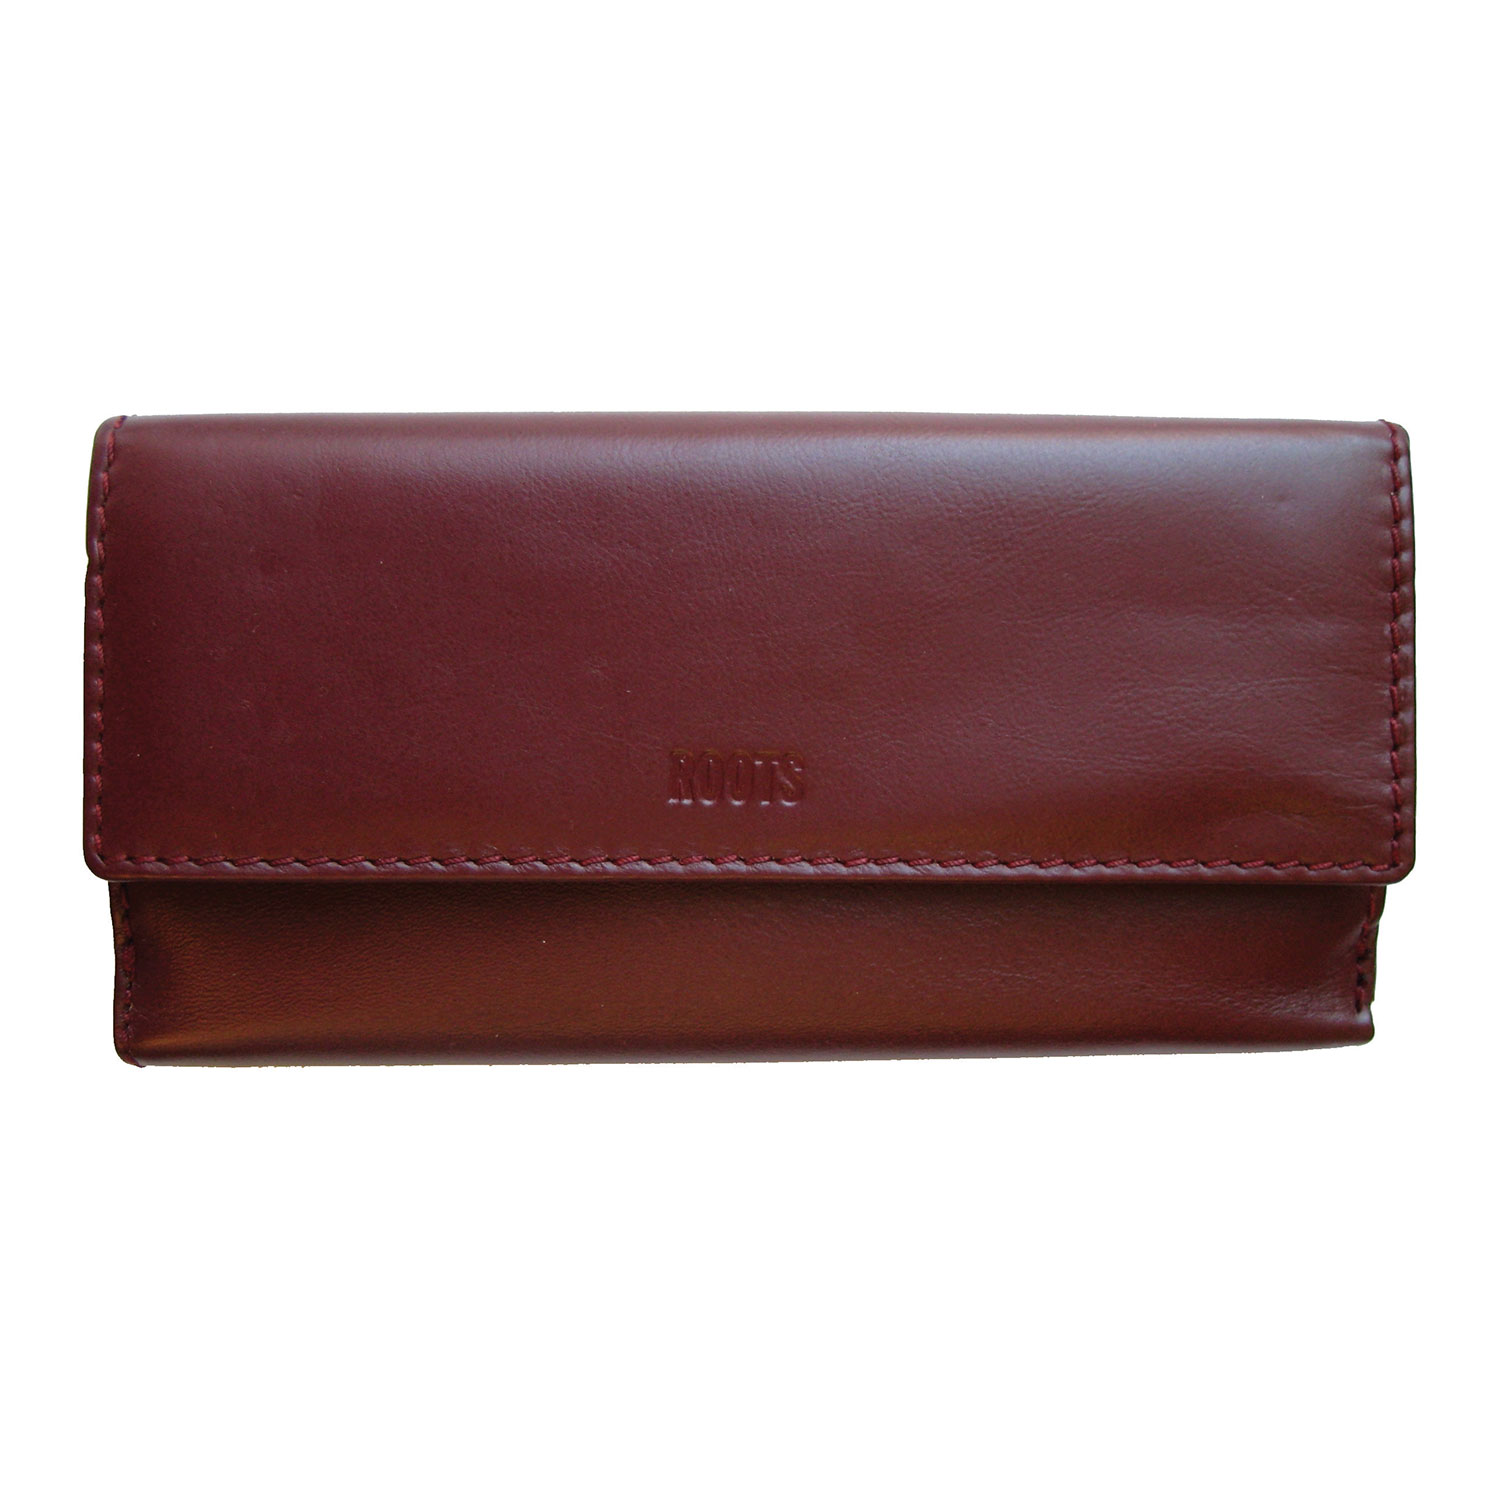 wallets luggage bags best canada